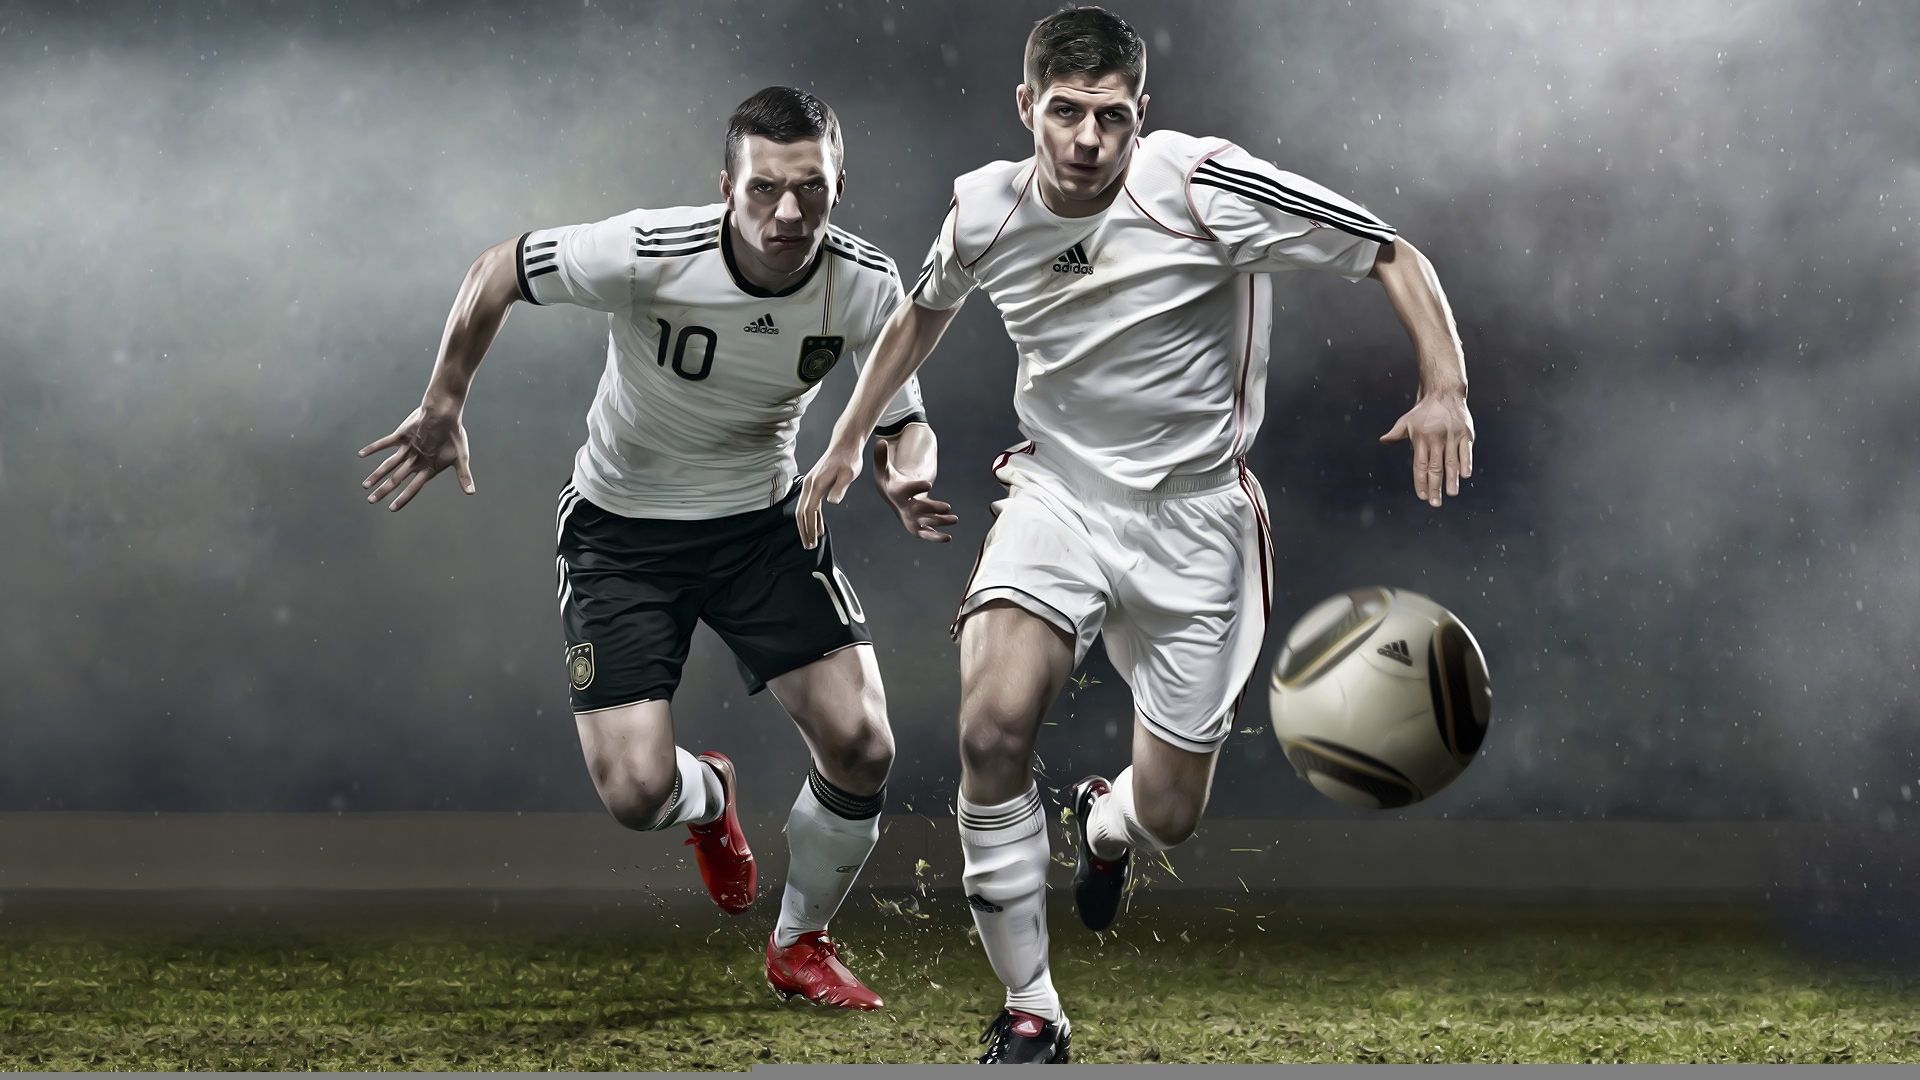 HD-Soccer-Football-Player-p-Full-Size-Download-wallpaper-wpc9005936